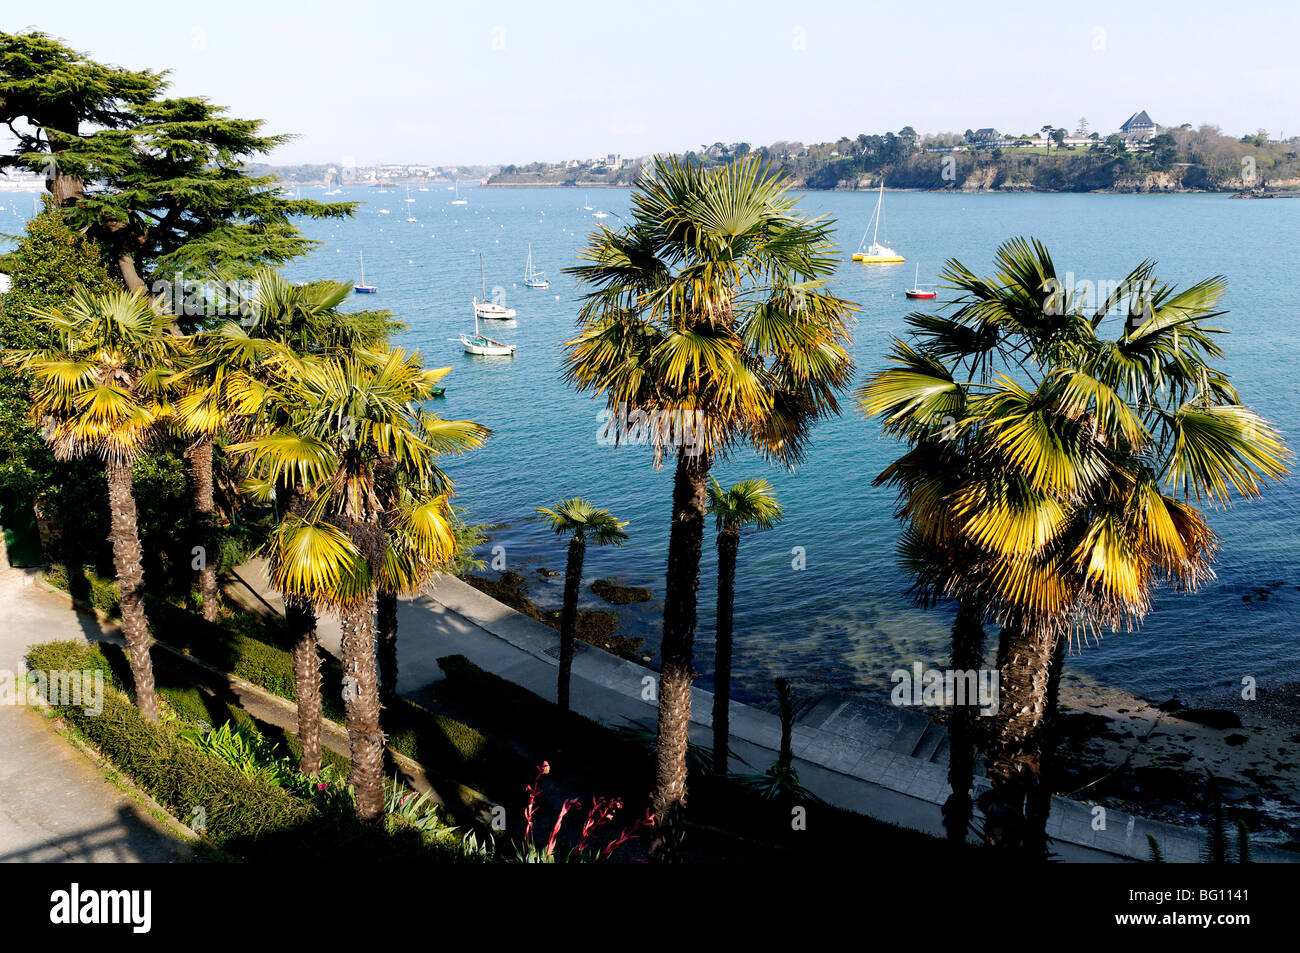 Promenade du Clair de Lune (Moonshine Walk) seen from above, Dinard, Brittany, France, Europe - Stock Image